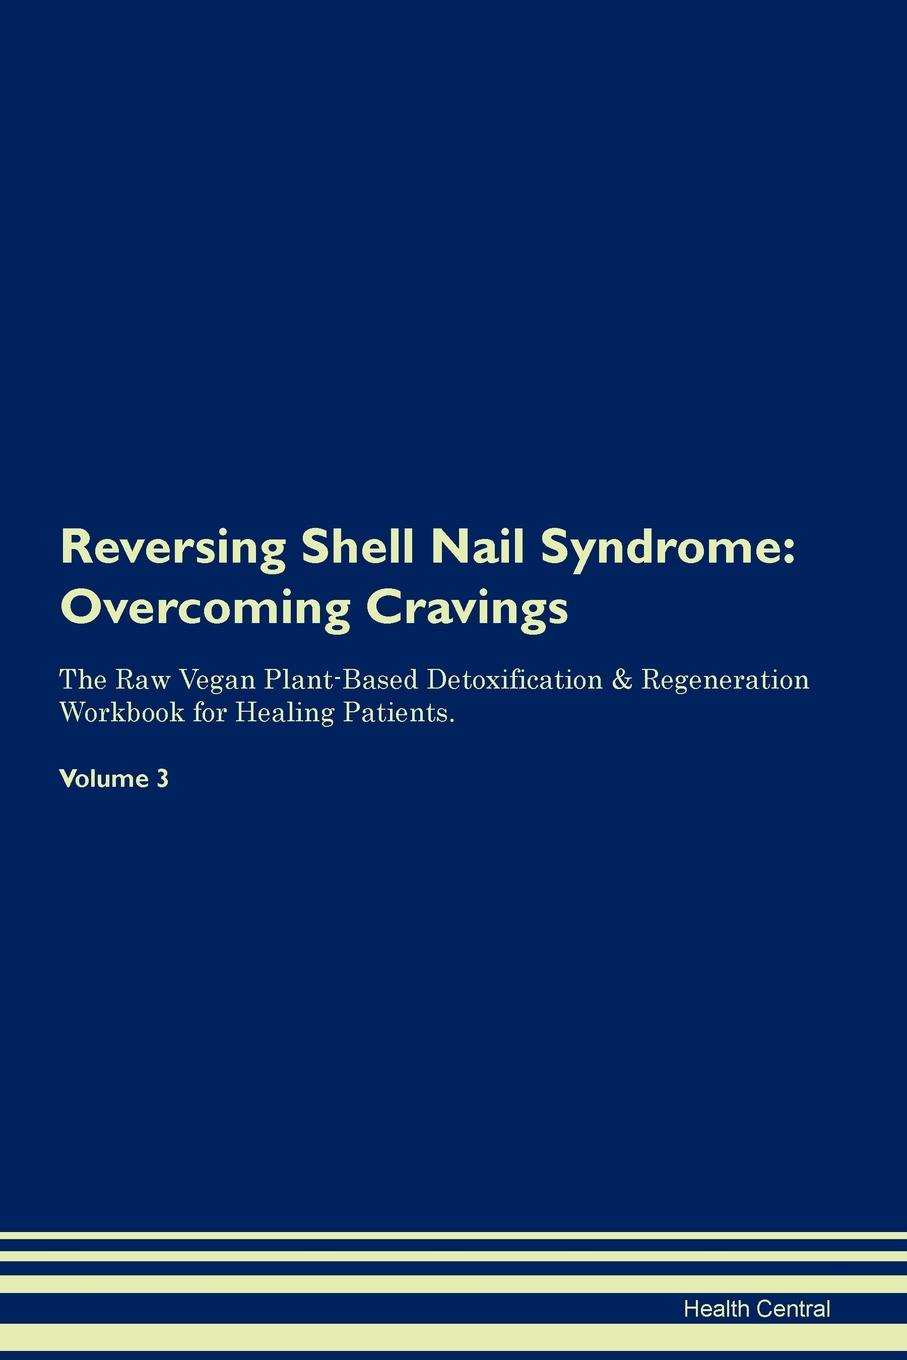 Reversing Shell Nail Syndrome. Overcoming Cravings The Raw Vegan Plant-Based Detoxification & Regeneration Workbook for Healing Patients. Volume 3